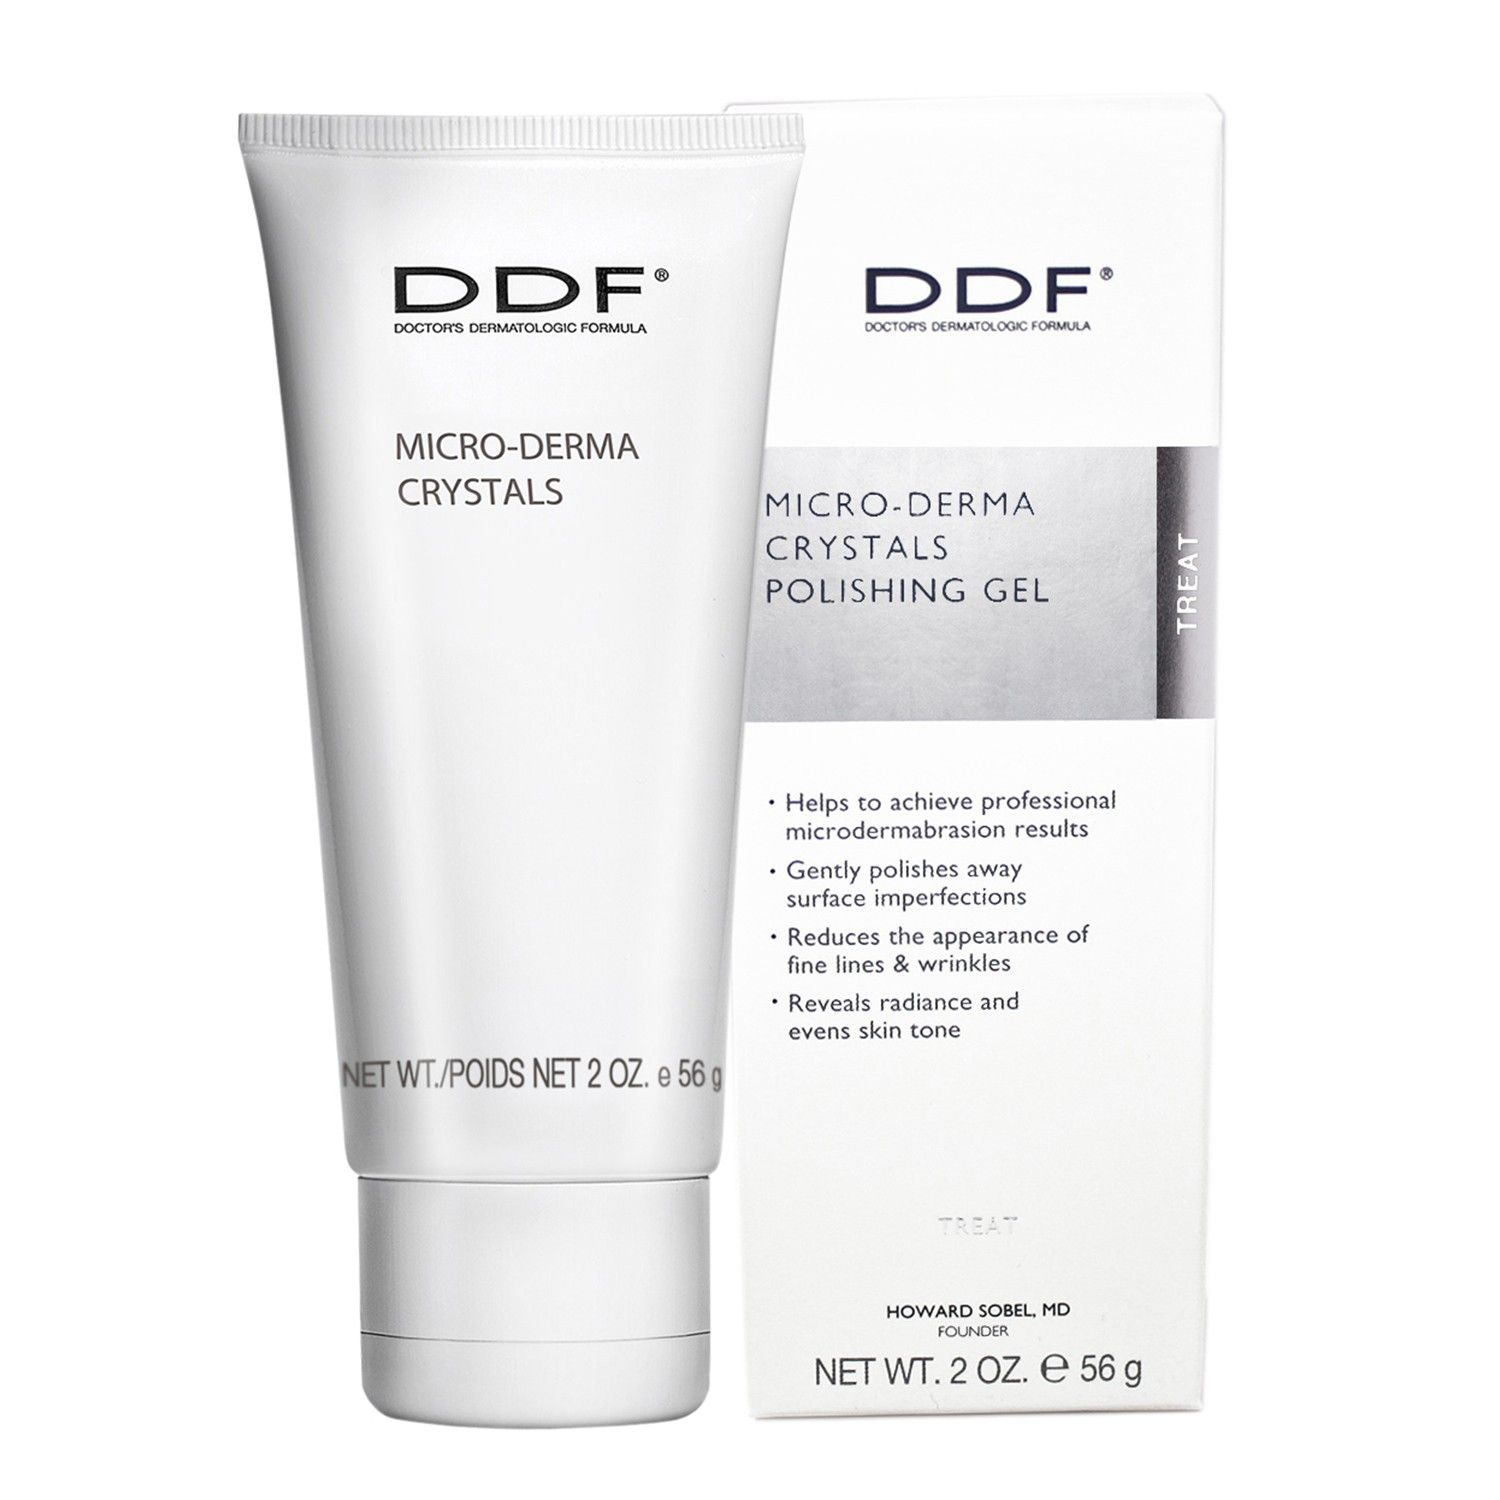 DDF MICRO-DERMA CRYSTALS POLISHING GEL (2.0 oz / 56 g)